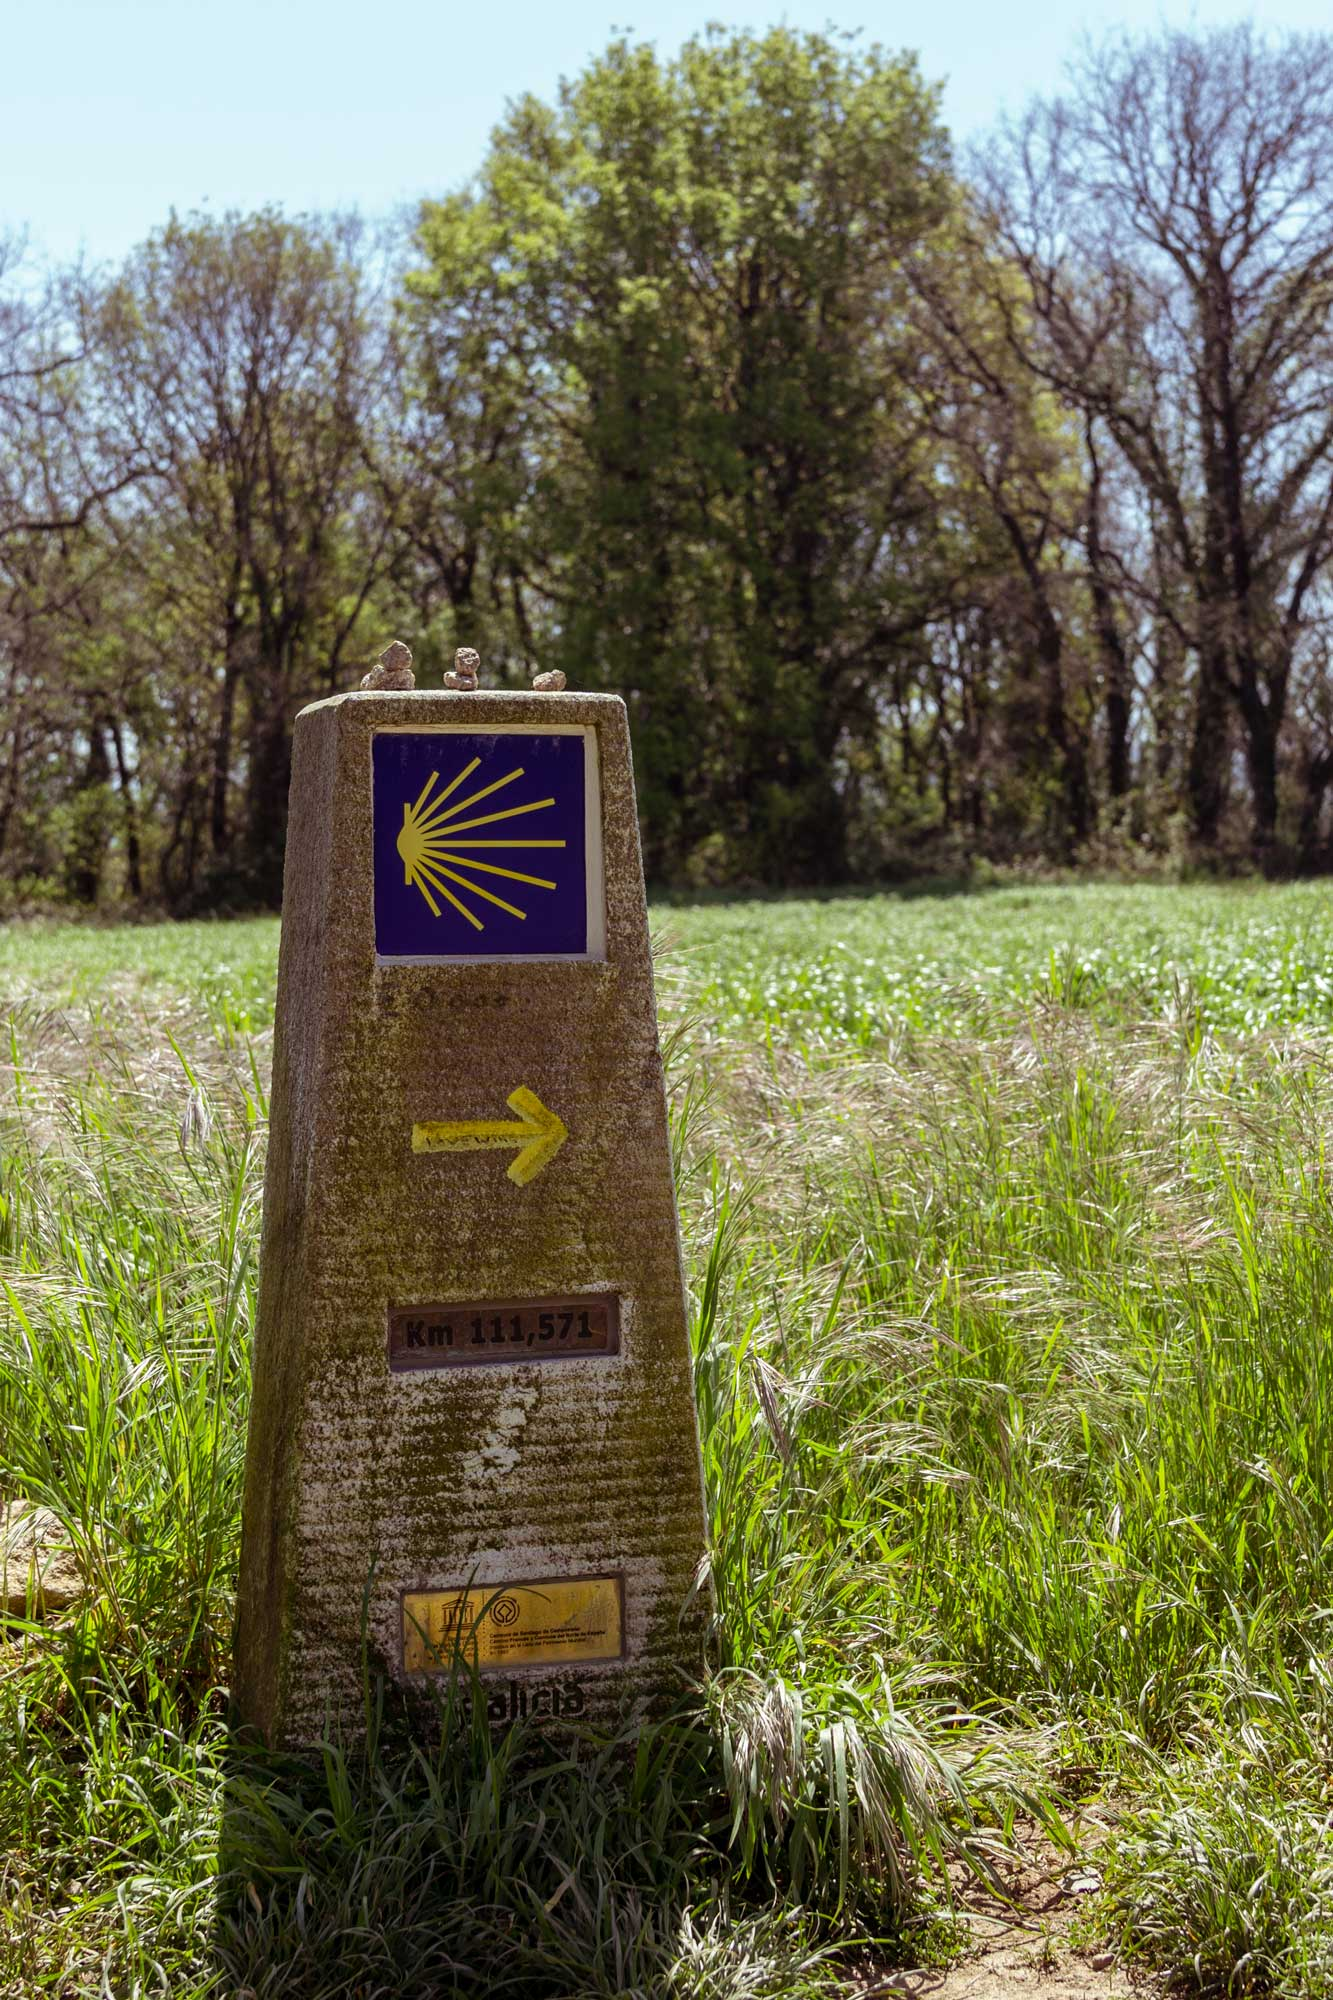 Signage of the Camino de Santiago